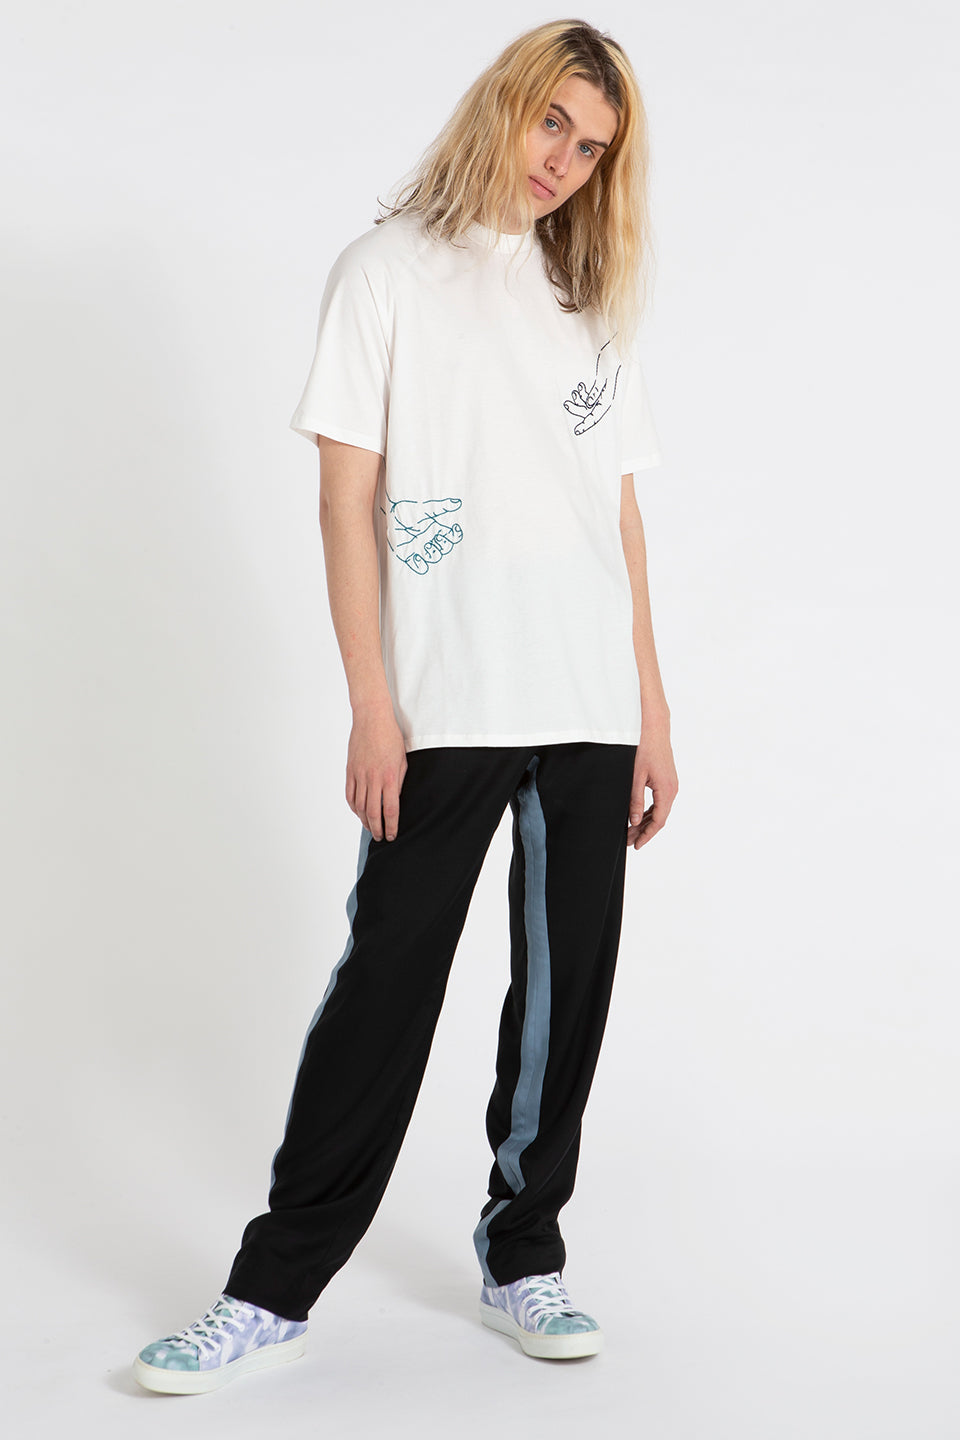 Slash t-shirt white with Mains Embroidery